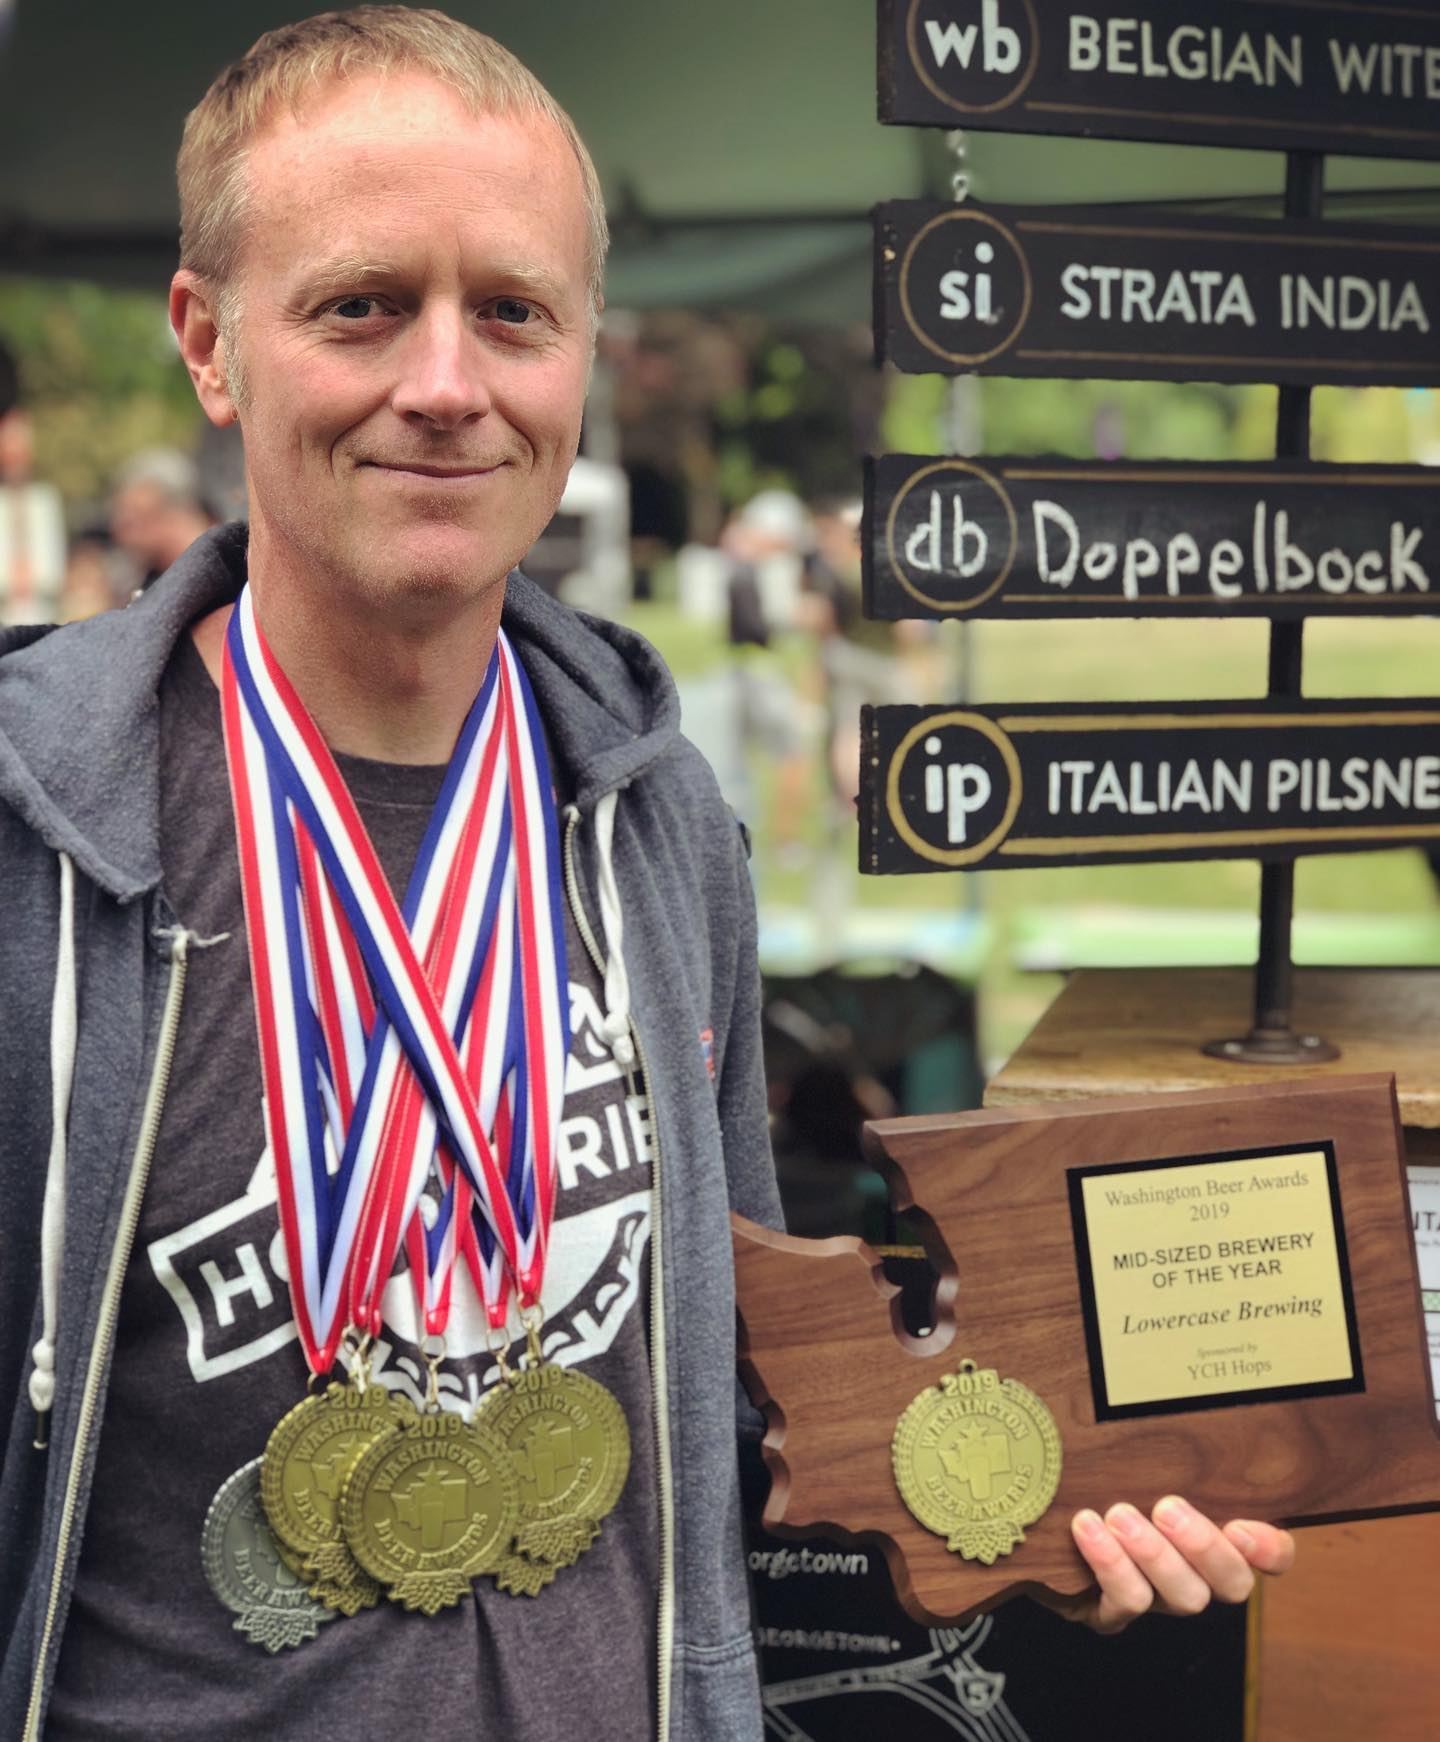 Lowercase Brewing from Seattle took home Mid-Size Brewery of the Year at the 2019 Washington Beer Awards. Pictured is head brewer John Marti for earning 7 medals, 6 of them gold. (image courtesy of Lowercase Brewing)